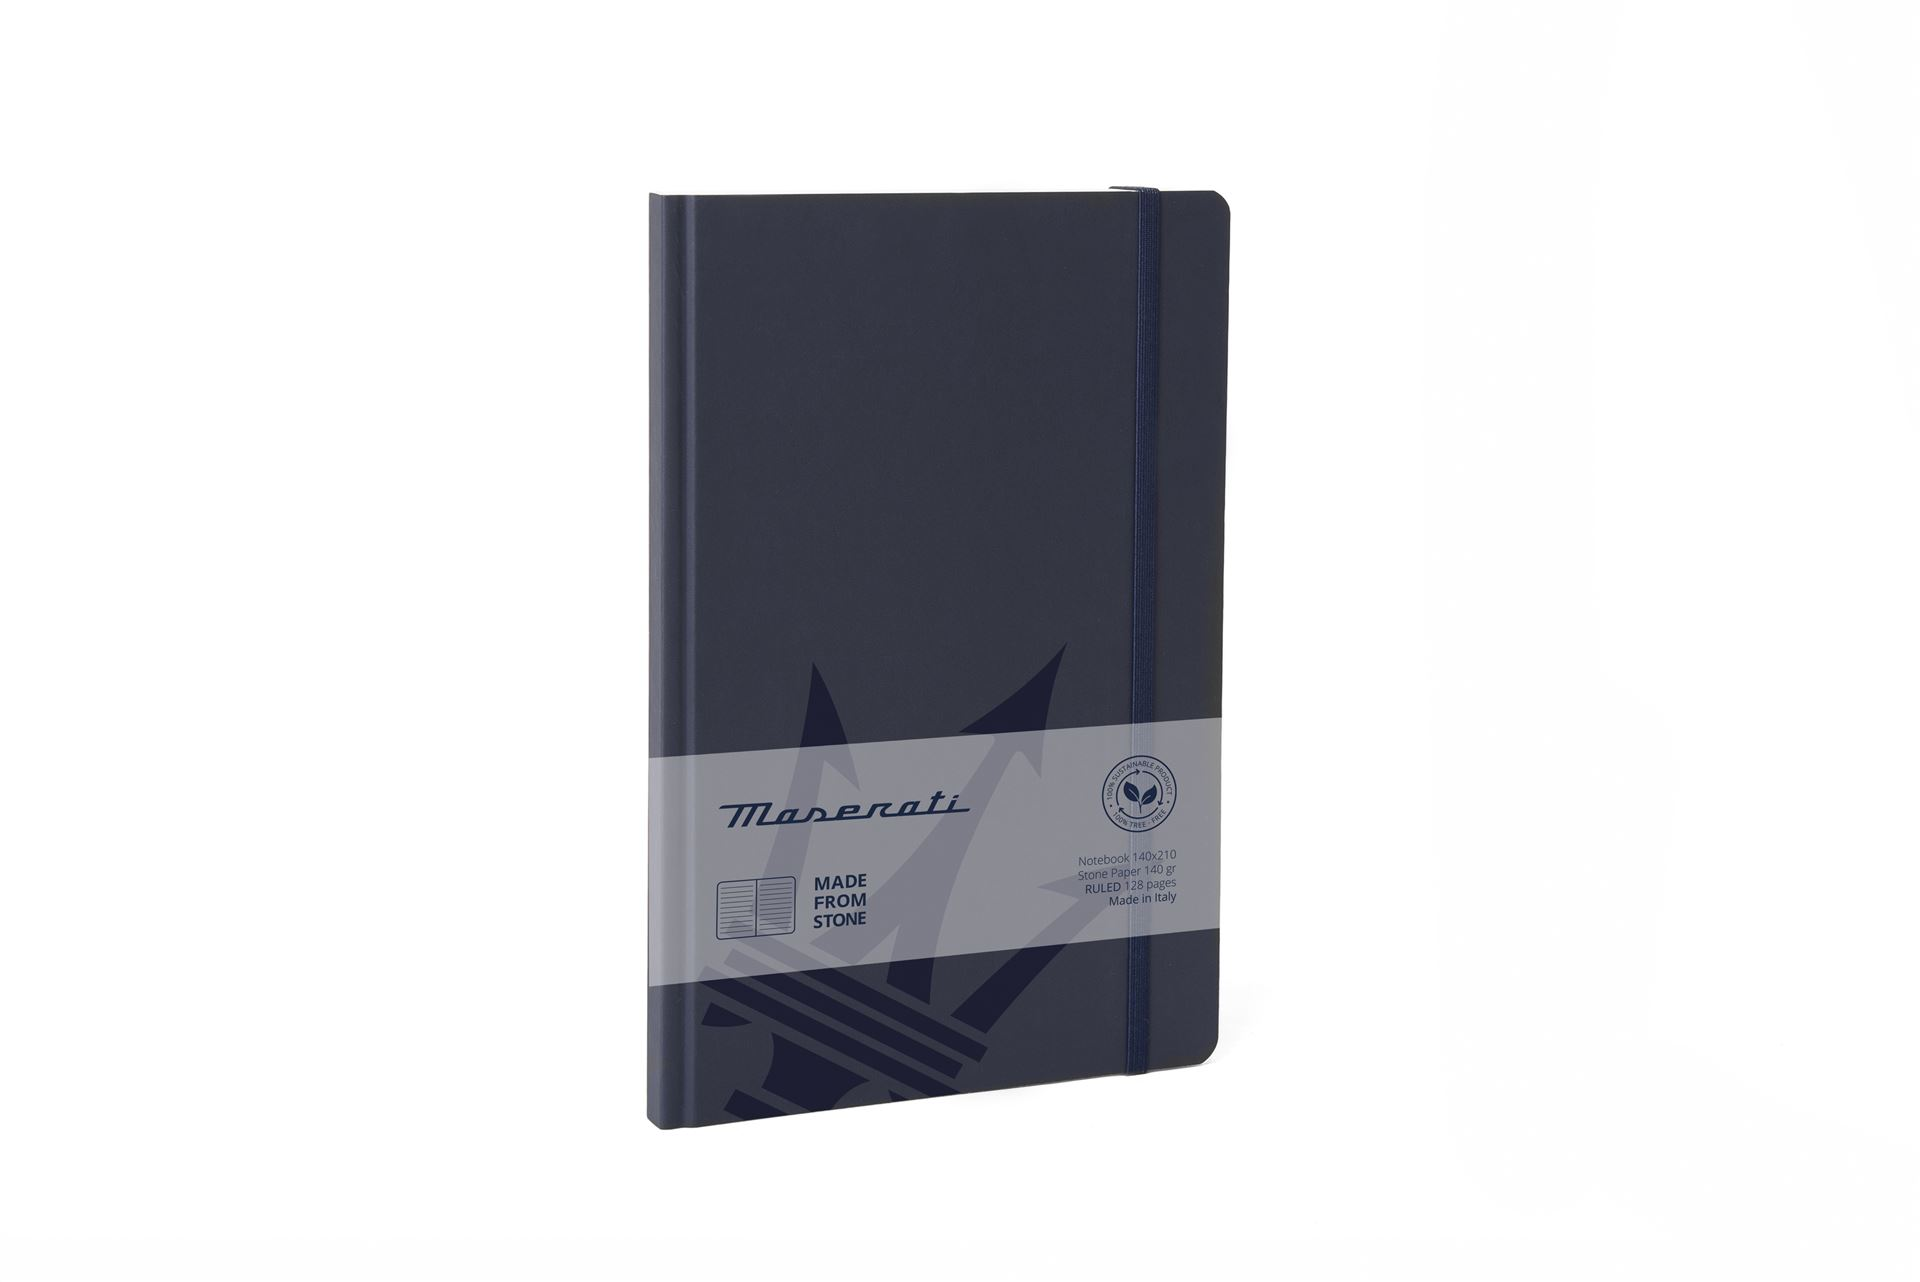 Drive Notebook